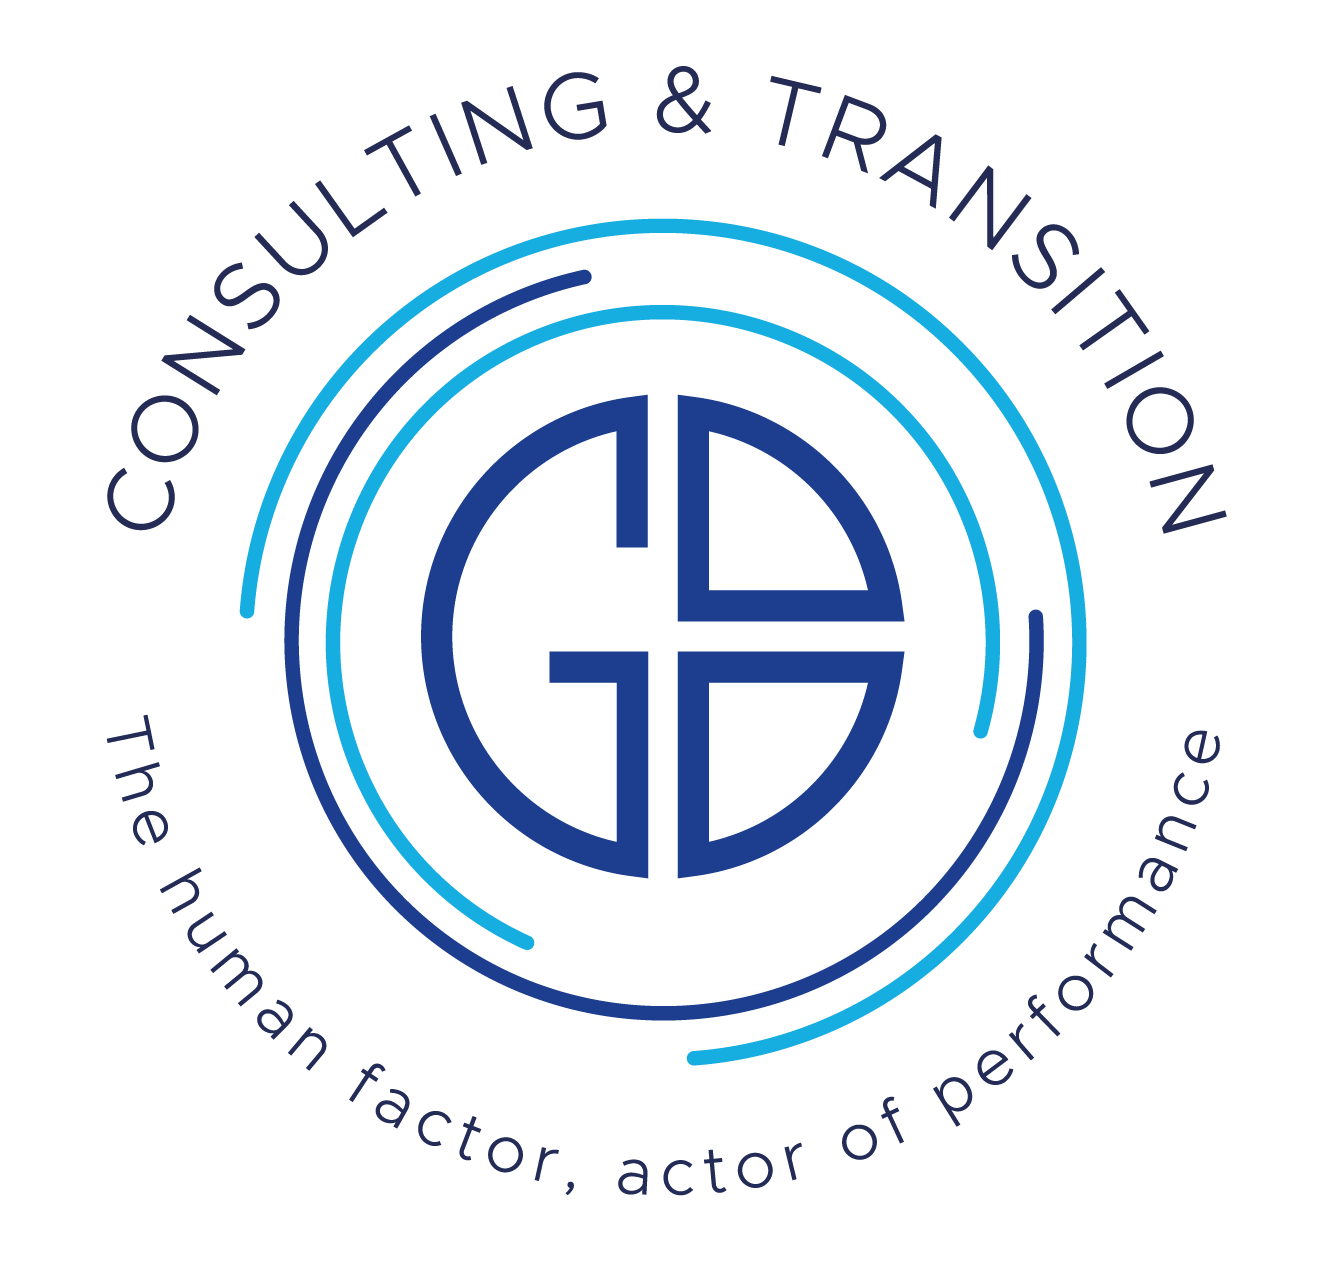 GB Consulting et Transition